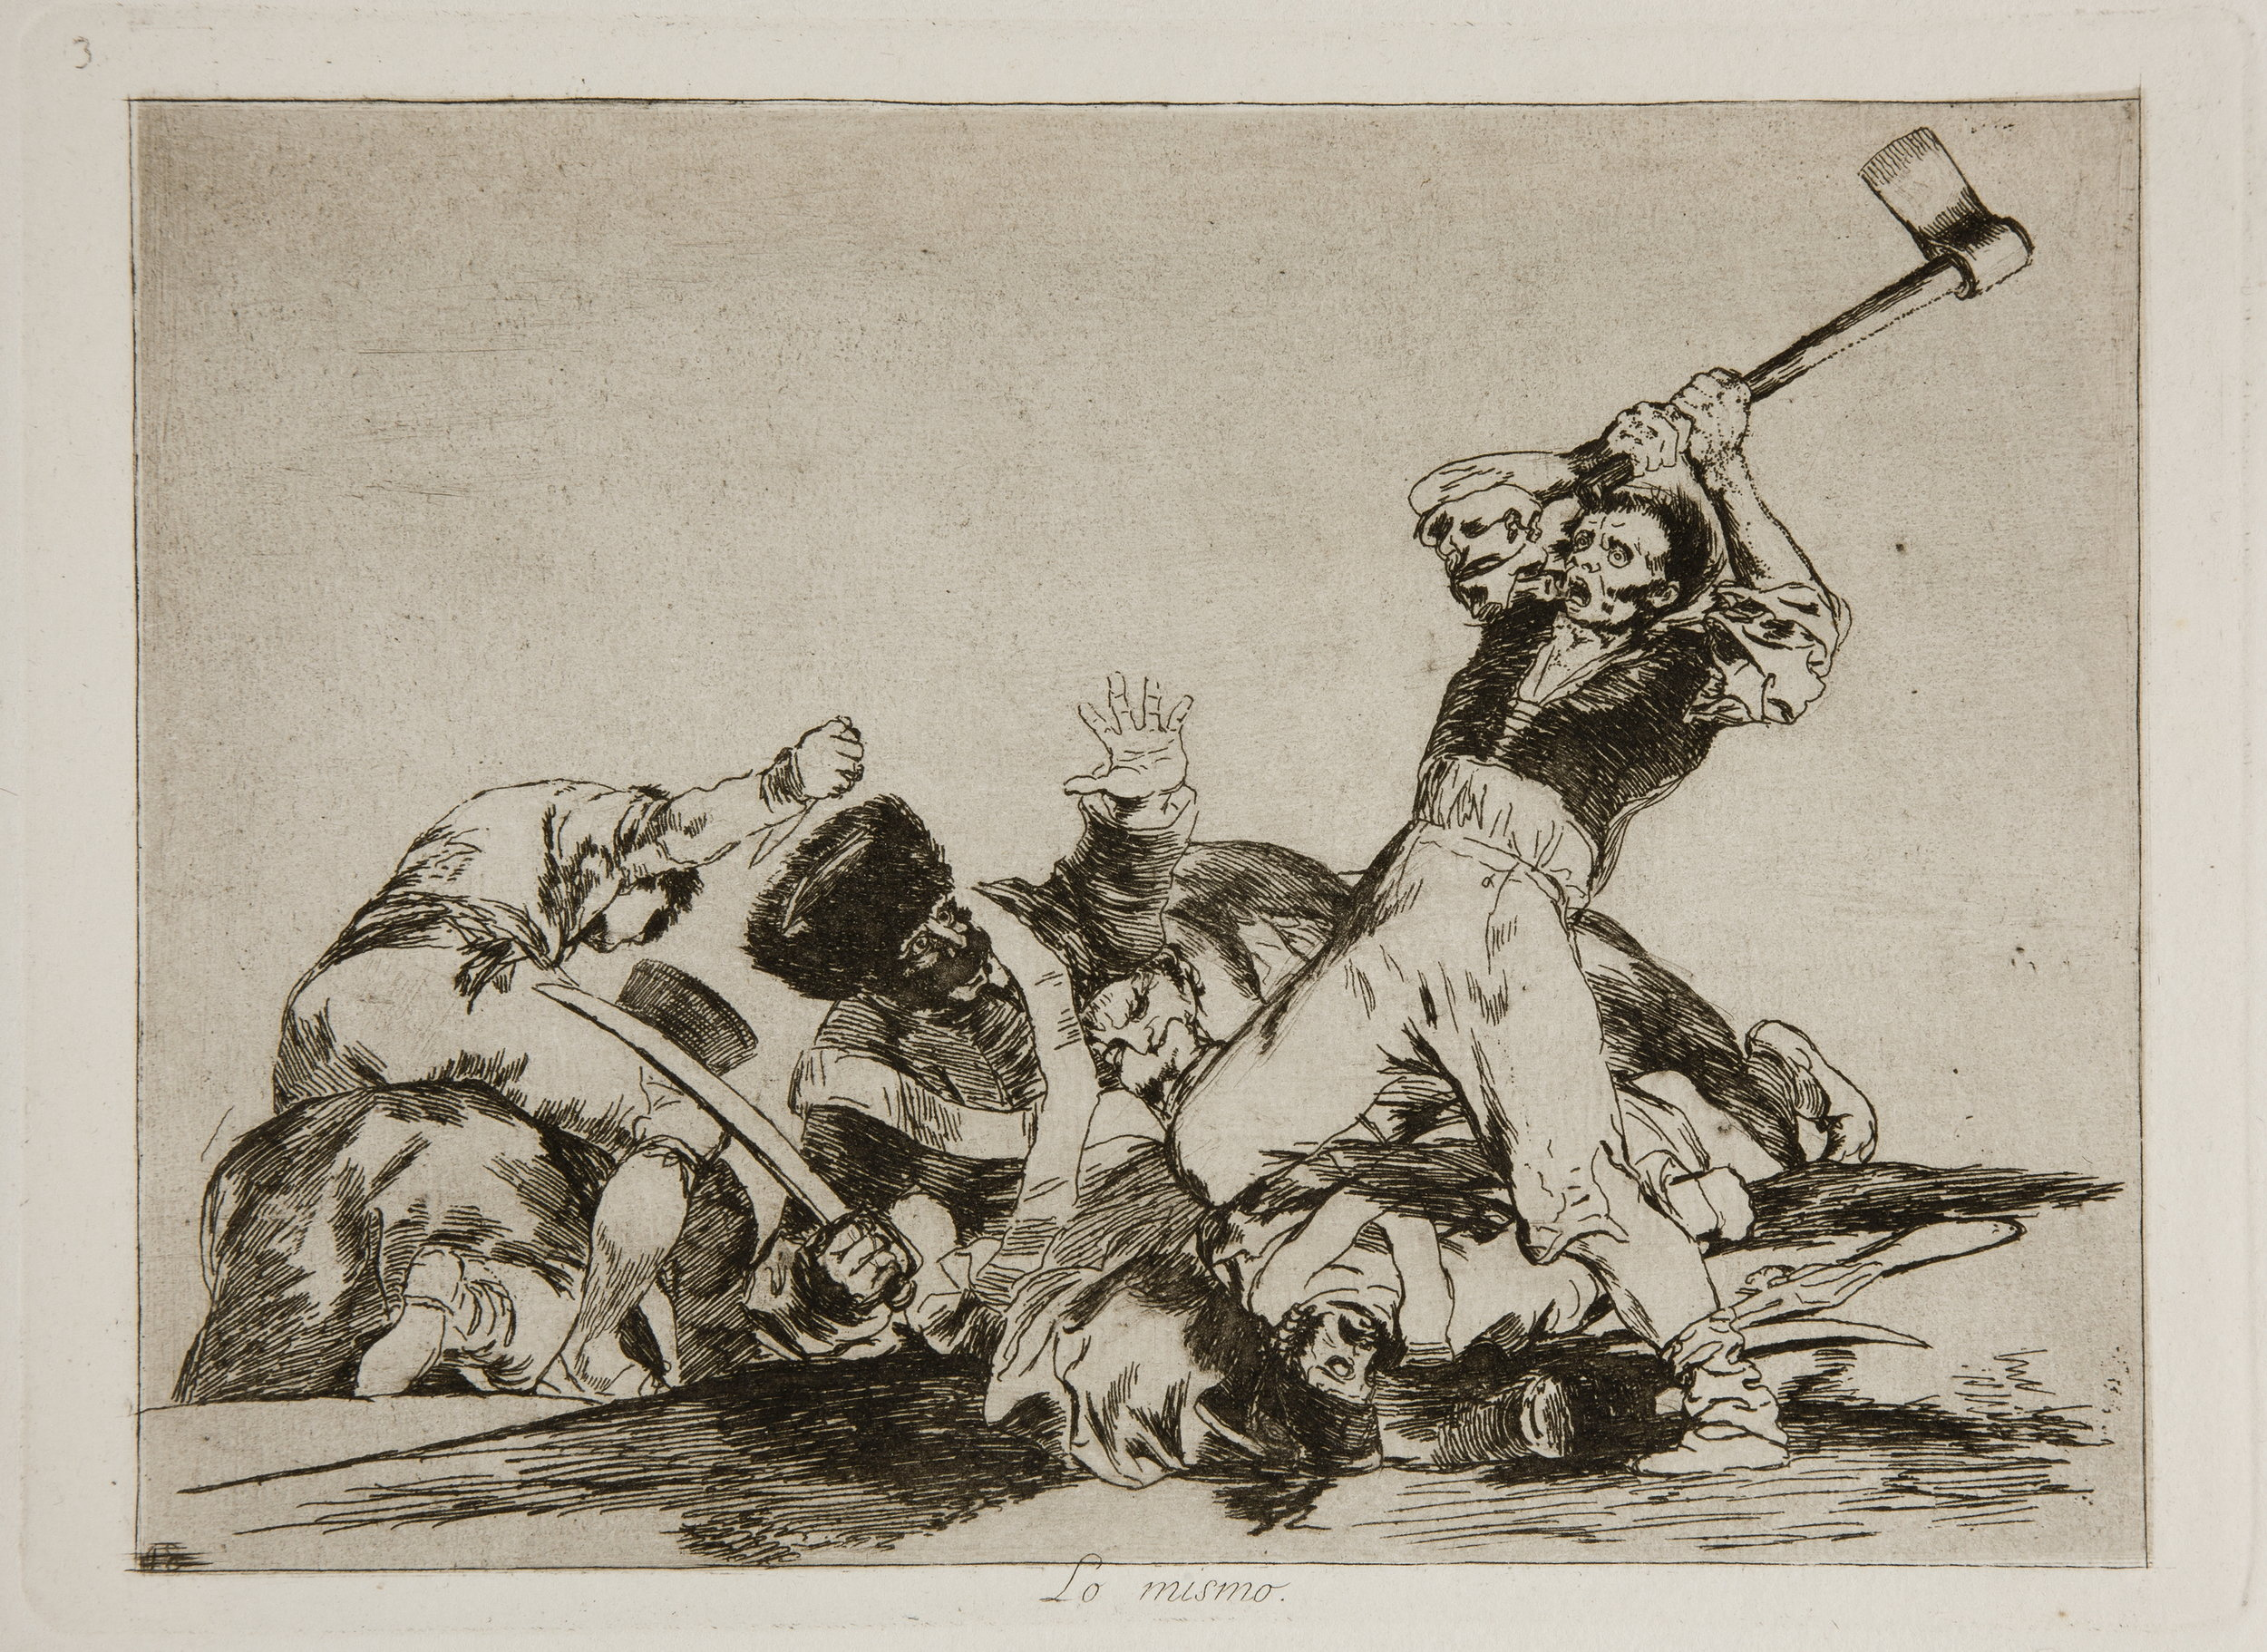 Plate-3. Lo mismo - The same. A man about to cut off the head of a soldier with an axe. Francisco Goya, Los Desastres de la Guerra. (Image courtesy of the Prado Museum)